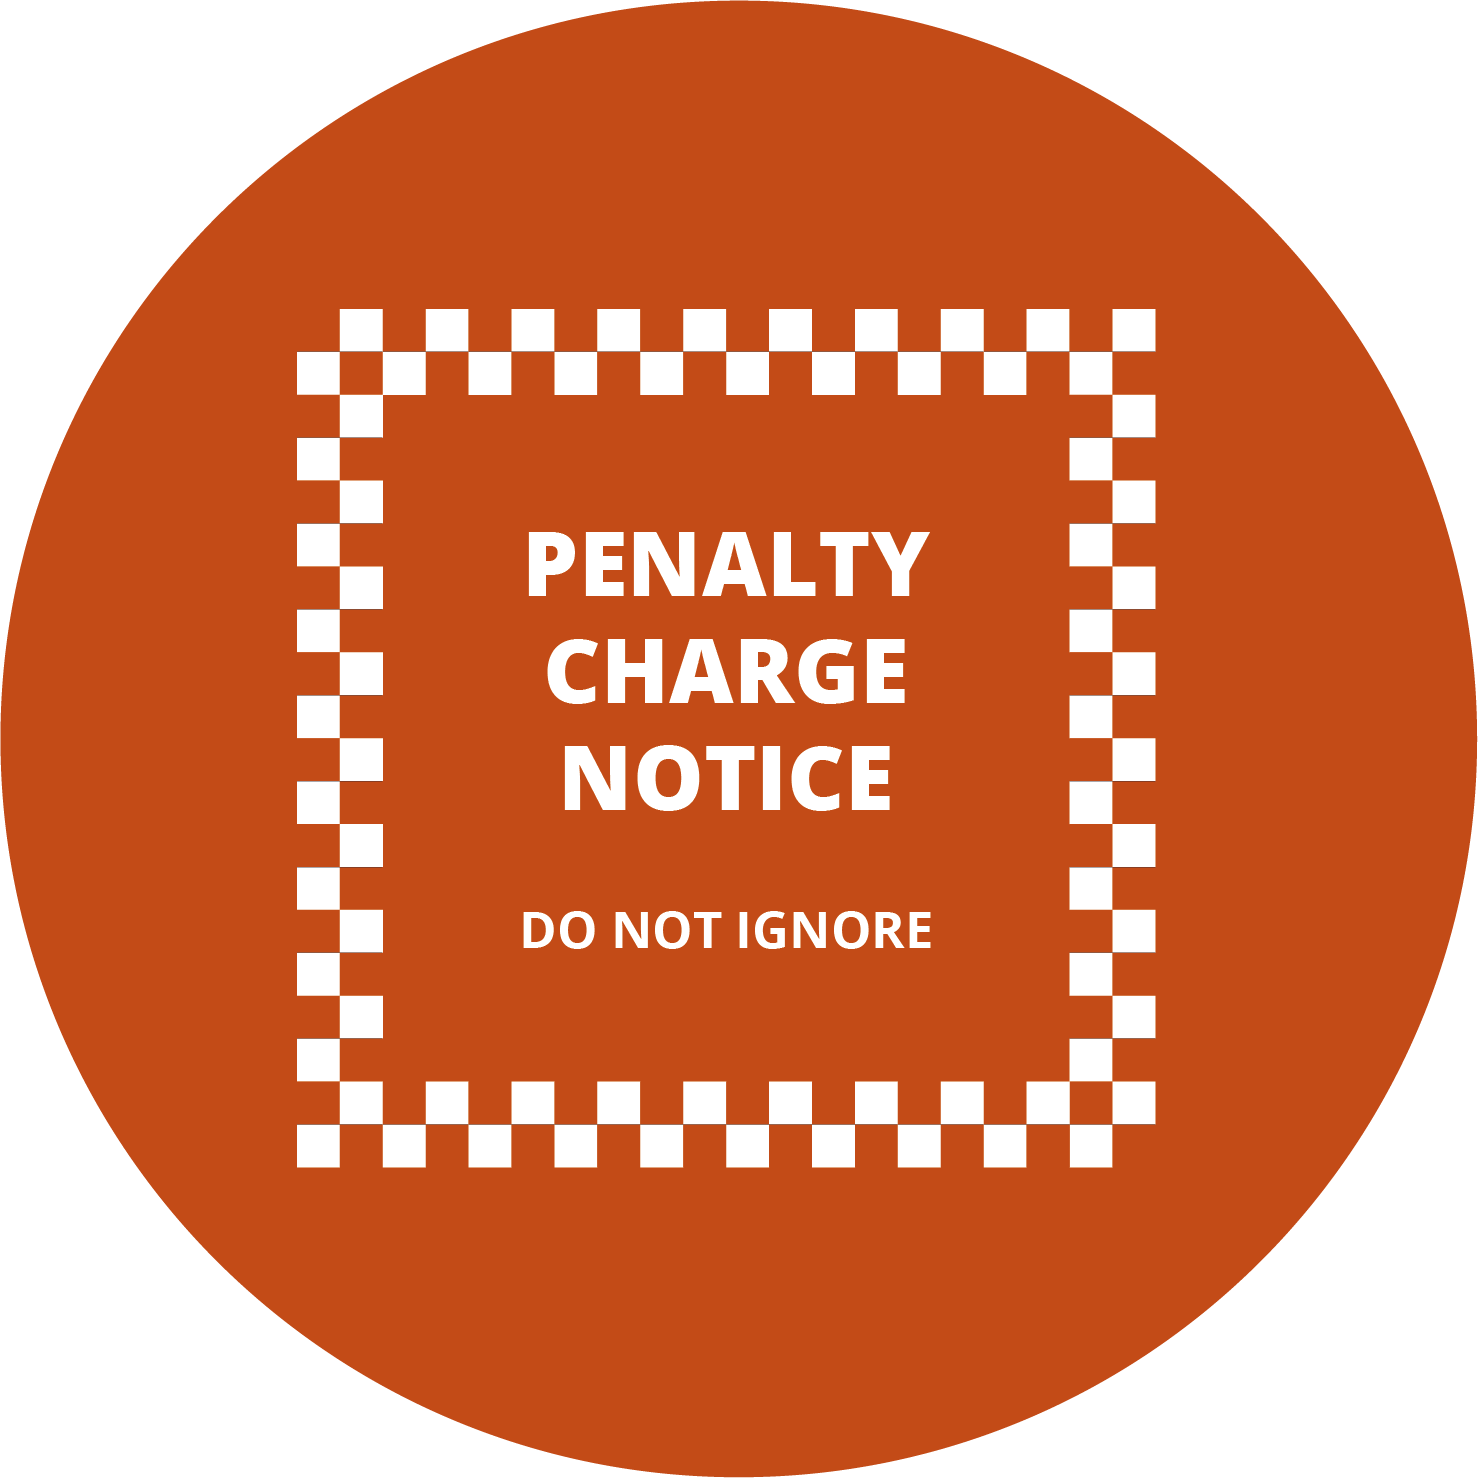 Large Button showing Penalty Charge Notice graphic